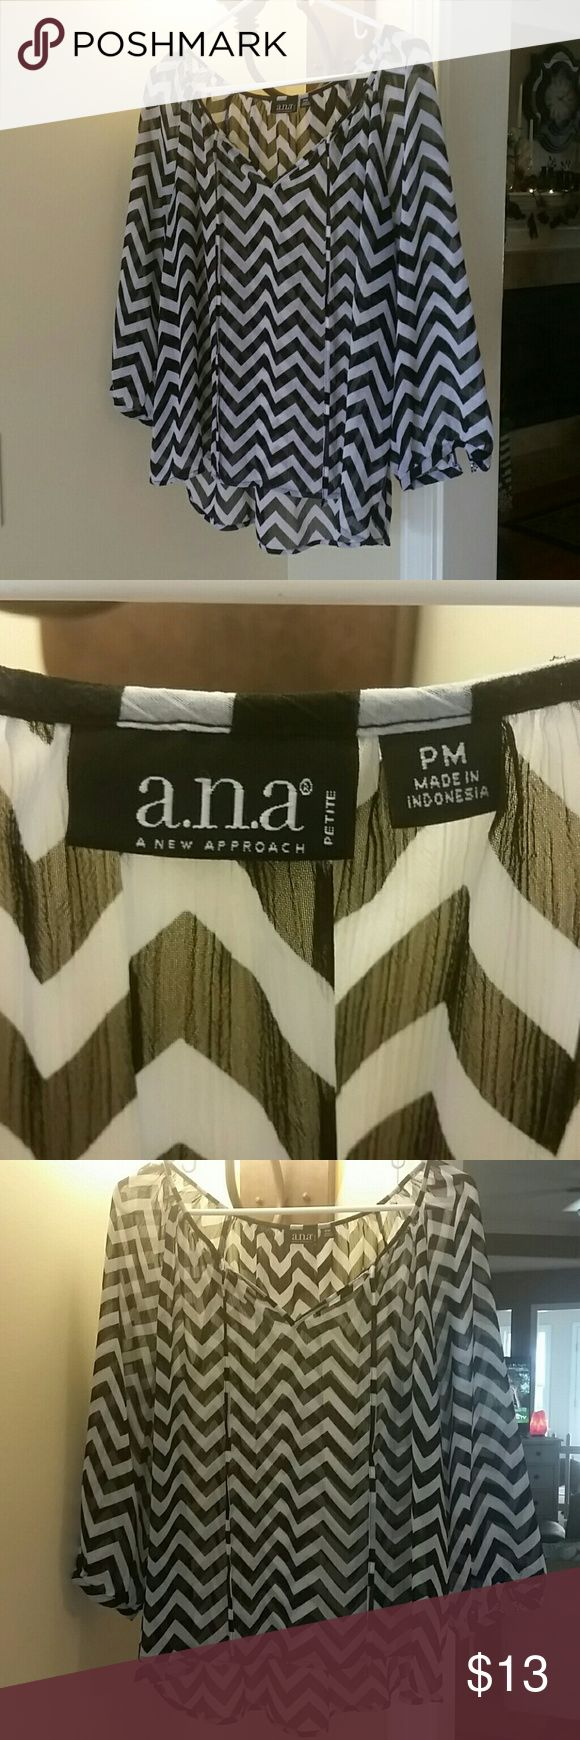 Chevron blouse Light and shear. Black and white Chevron blouse with 3/4 sleeves and tie. a.n.a Tops Blouses